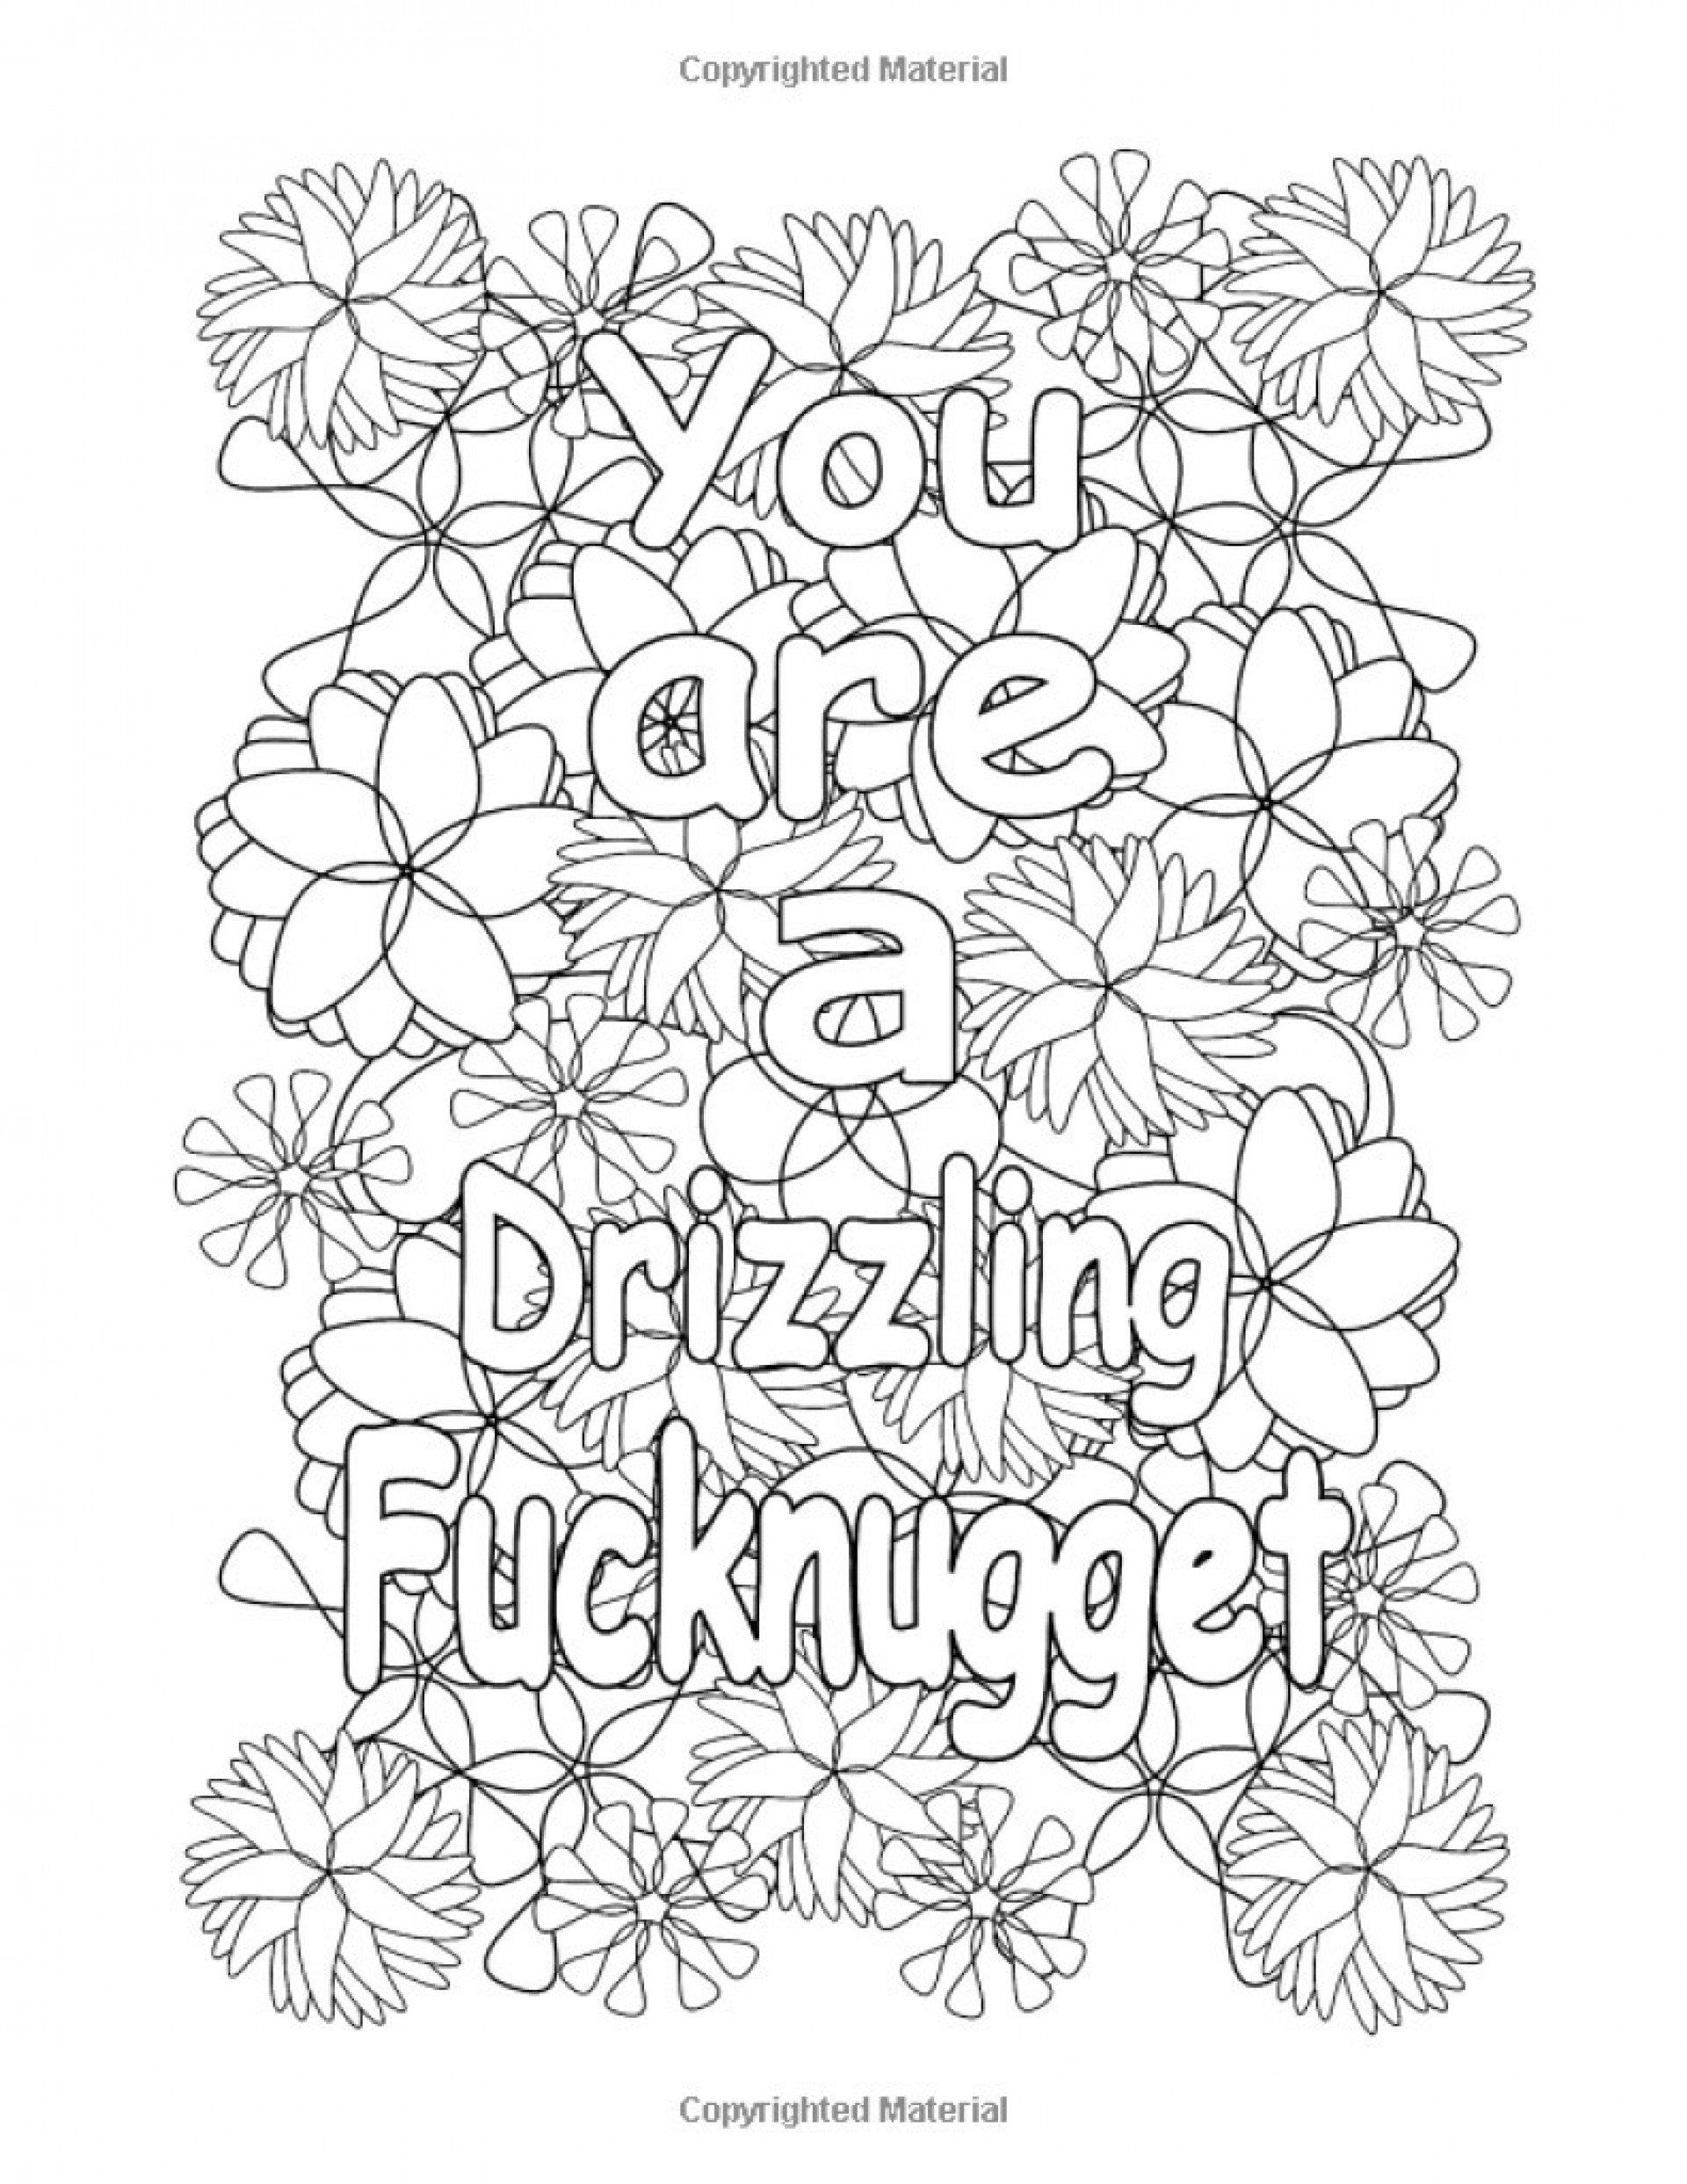 Swear Word Coloring Books Lovely Collection Free Printable Swear Word Coloring Pages Words Coloring Book Cuss Words Coloring Book Swear Word Coloring Book